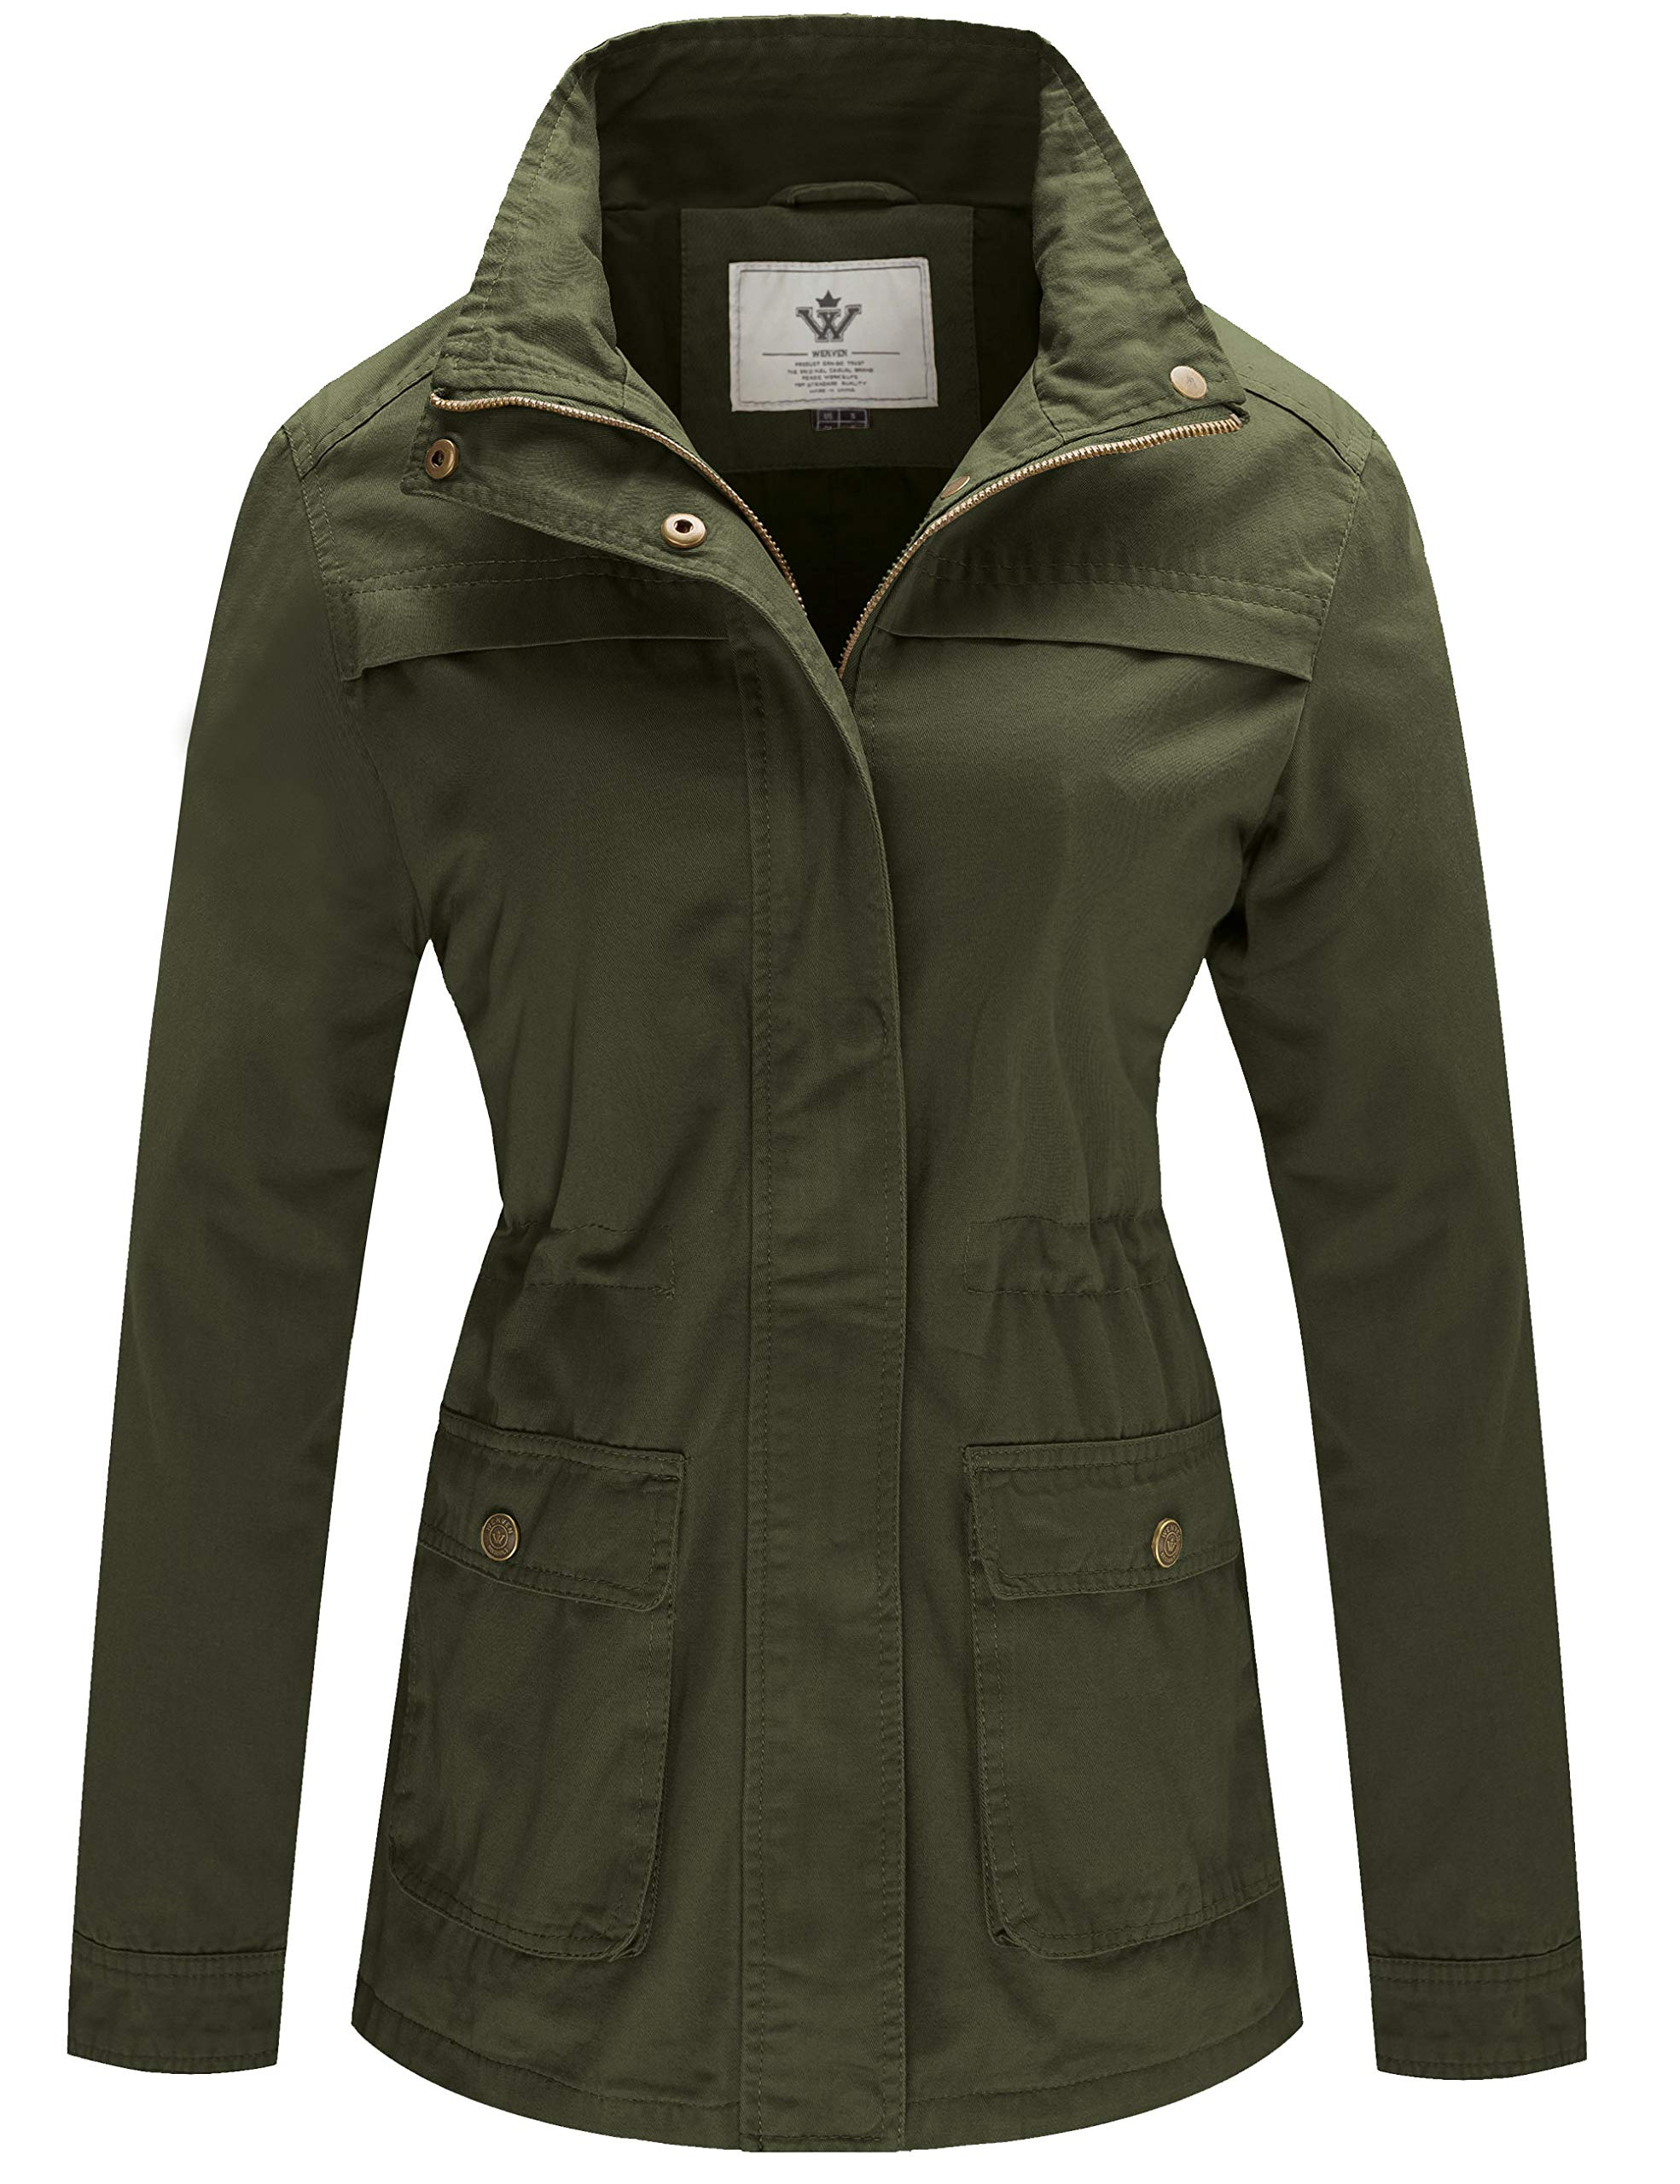 WenVen Women's Stand Collar Slim Cotton Fall Jacket(Army Green, M) by WenVen